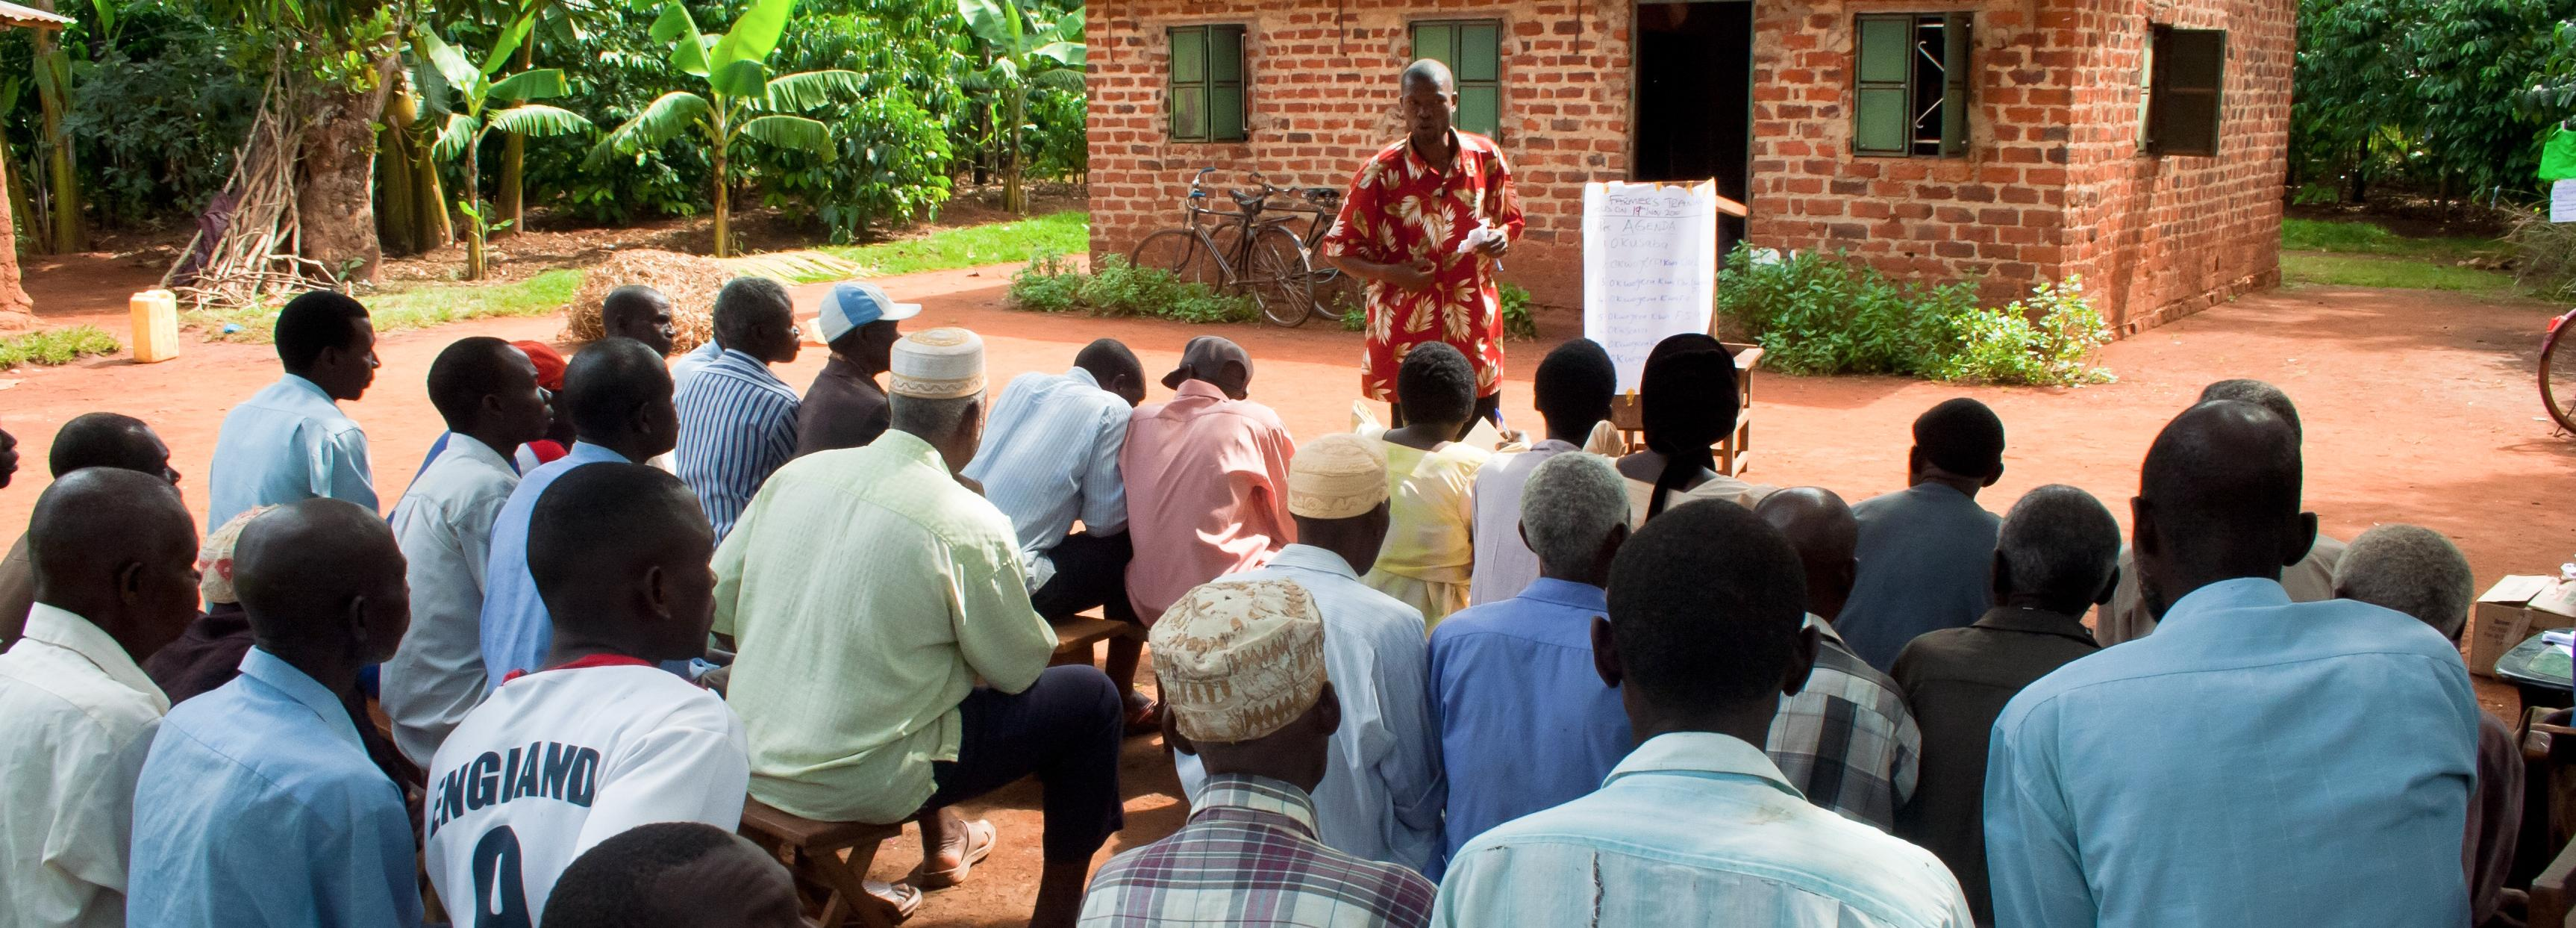 Coffee farmer field school in Uganda © UTZ Certified